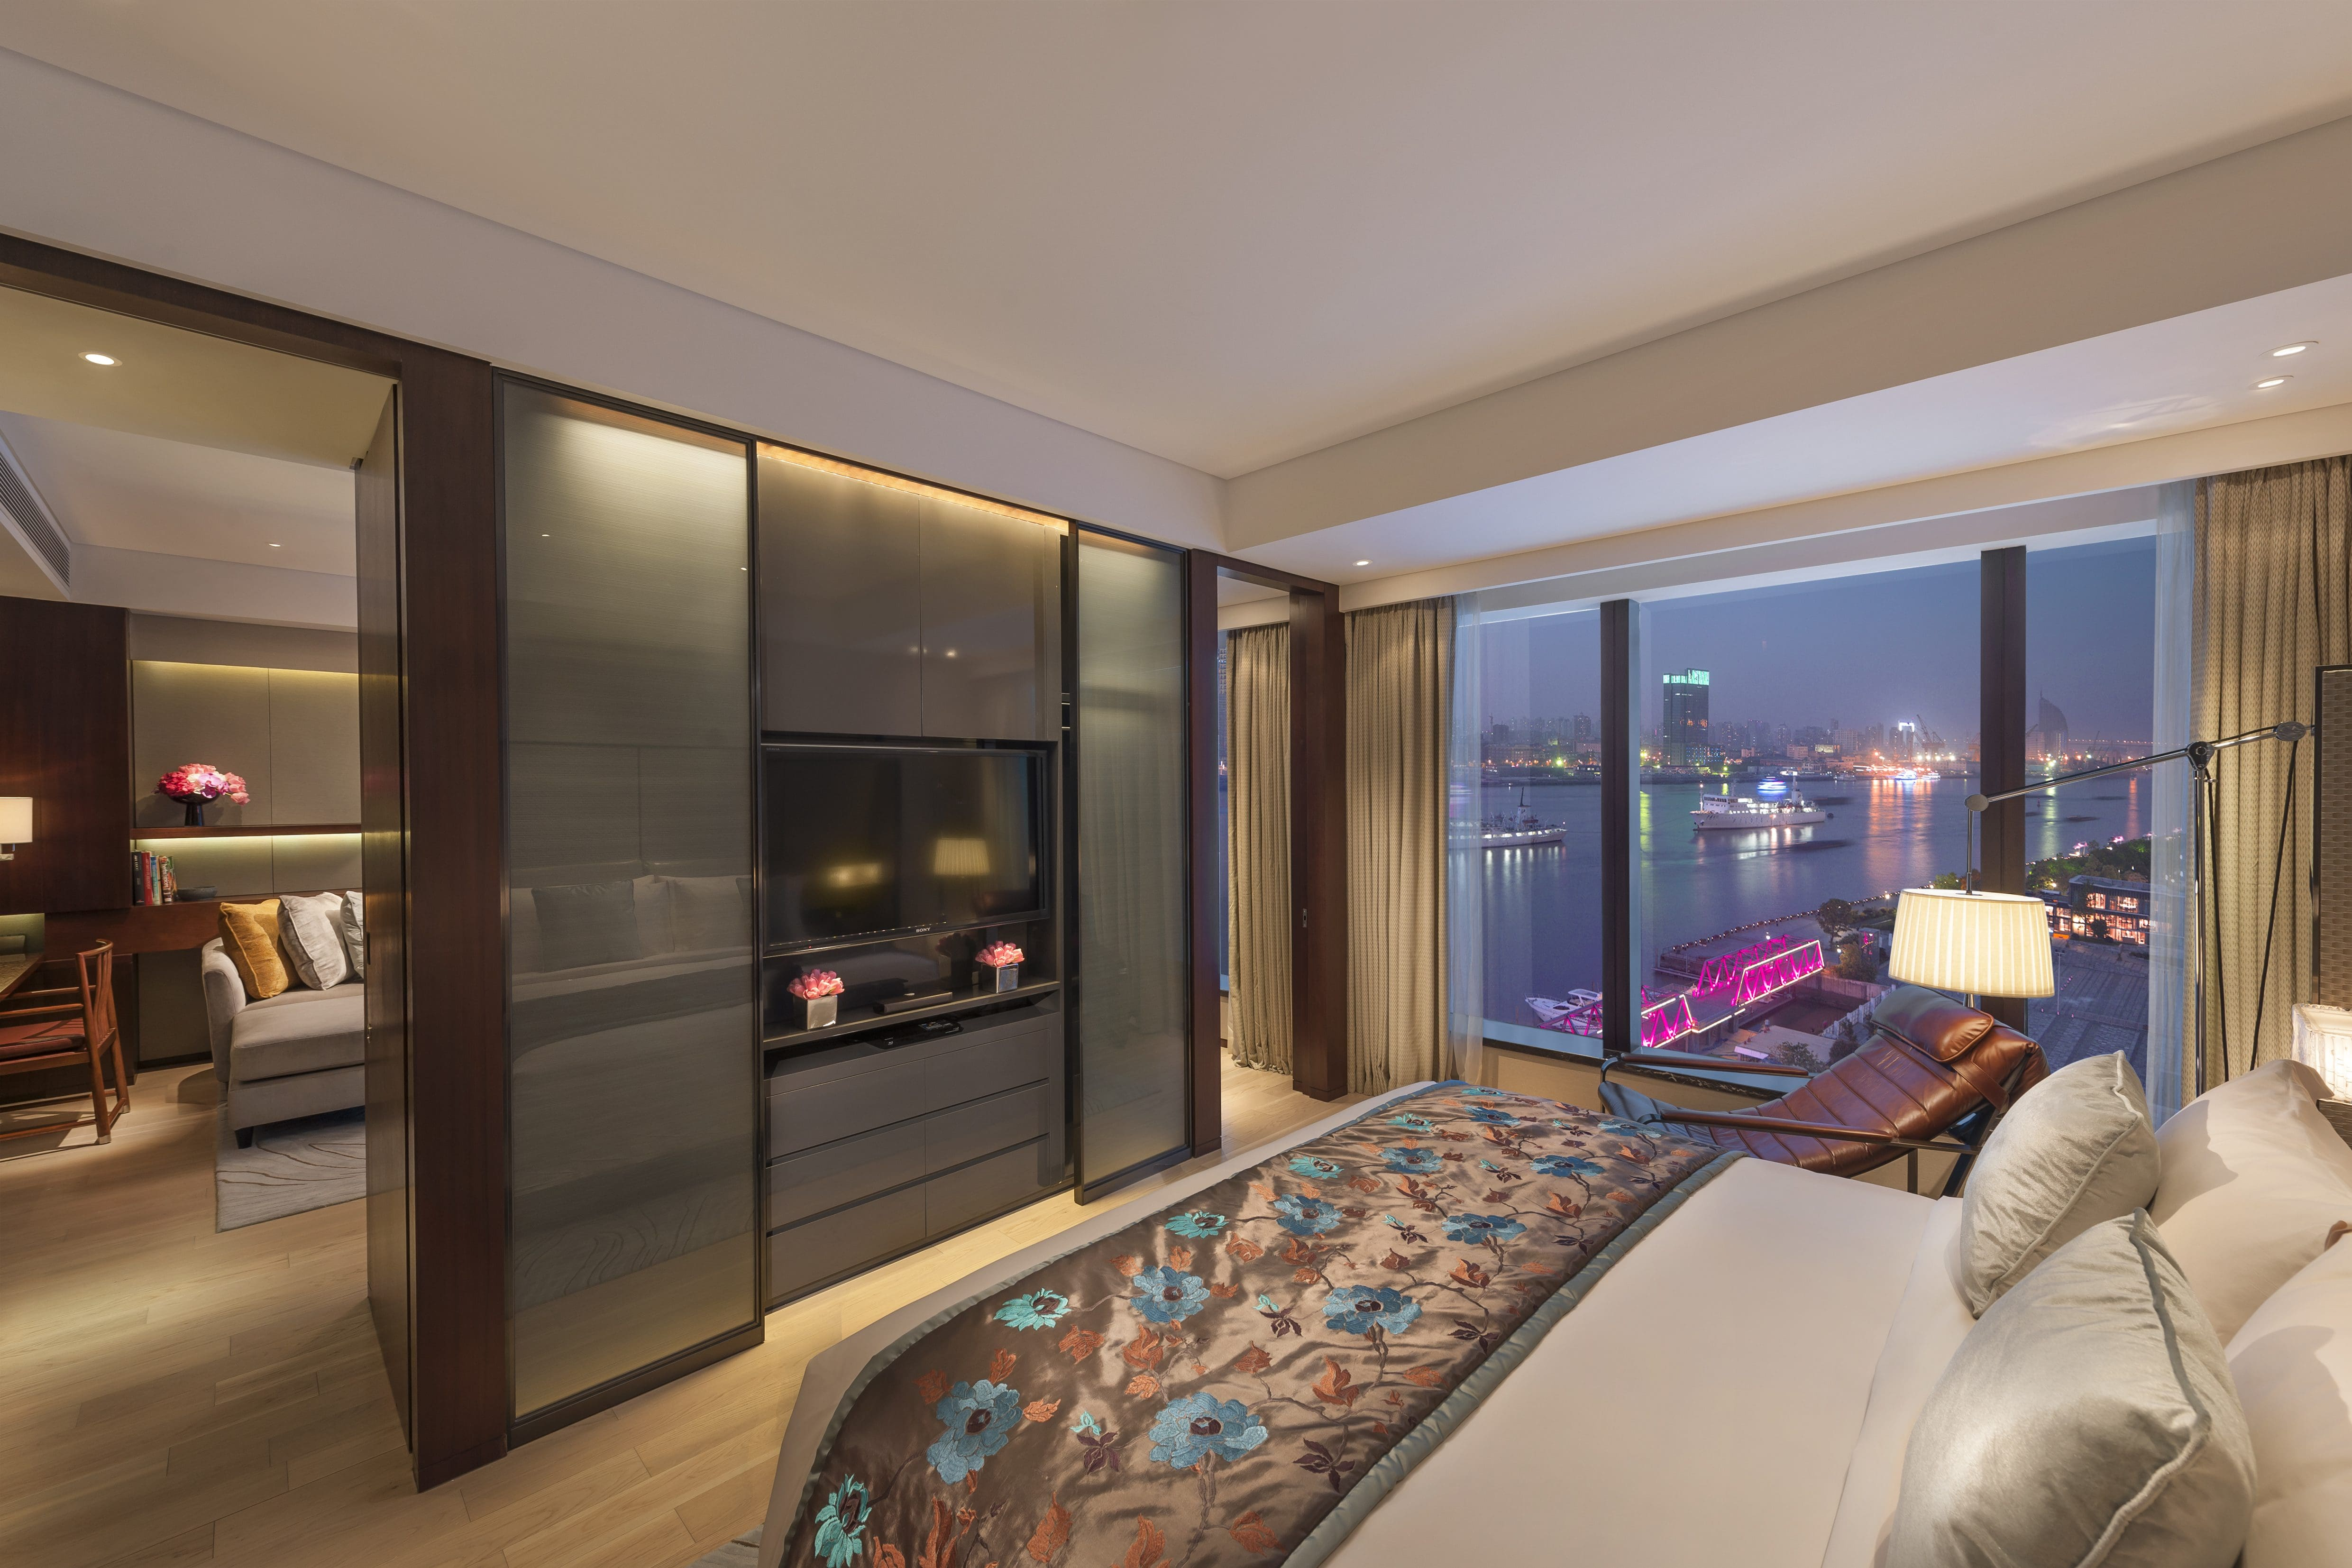 OneBedroom Apartment Luxury Apartments by Mandarin Oriental